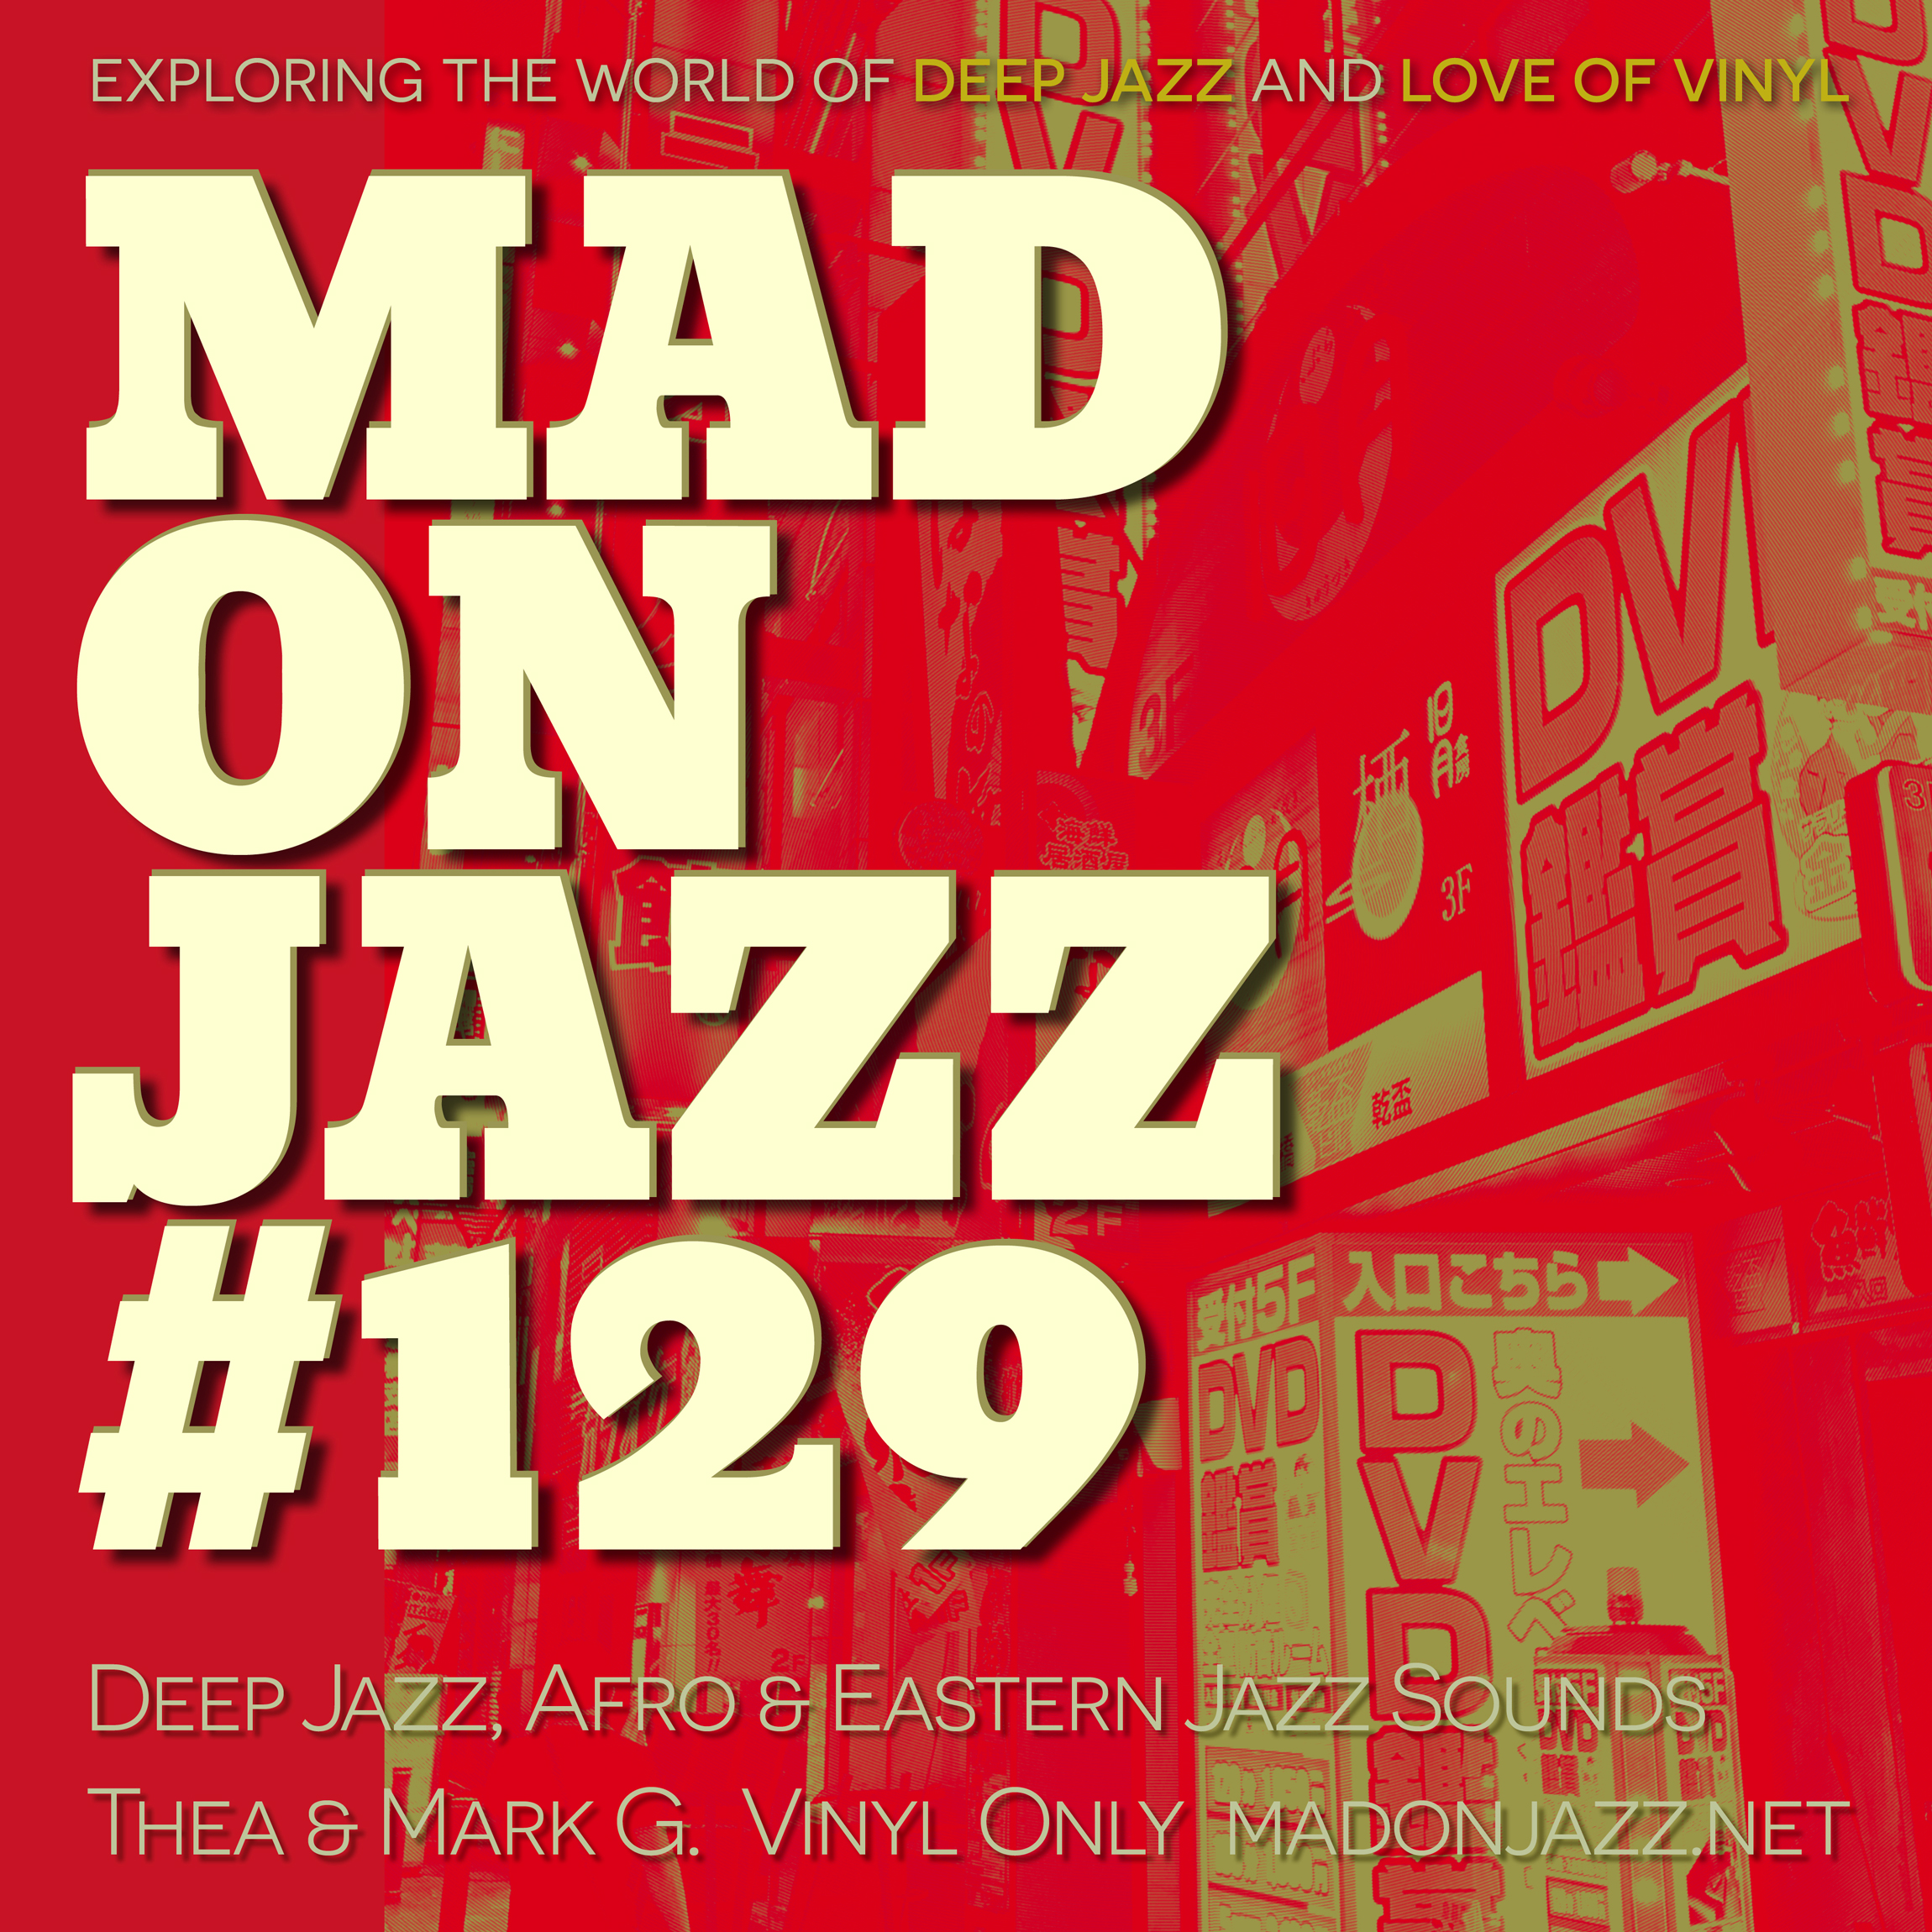 MADONJAZZ 129: Deep Jazz, Afro & Eastern Jazz Sounds